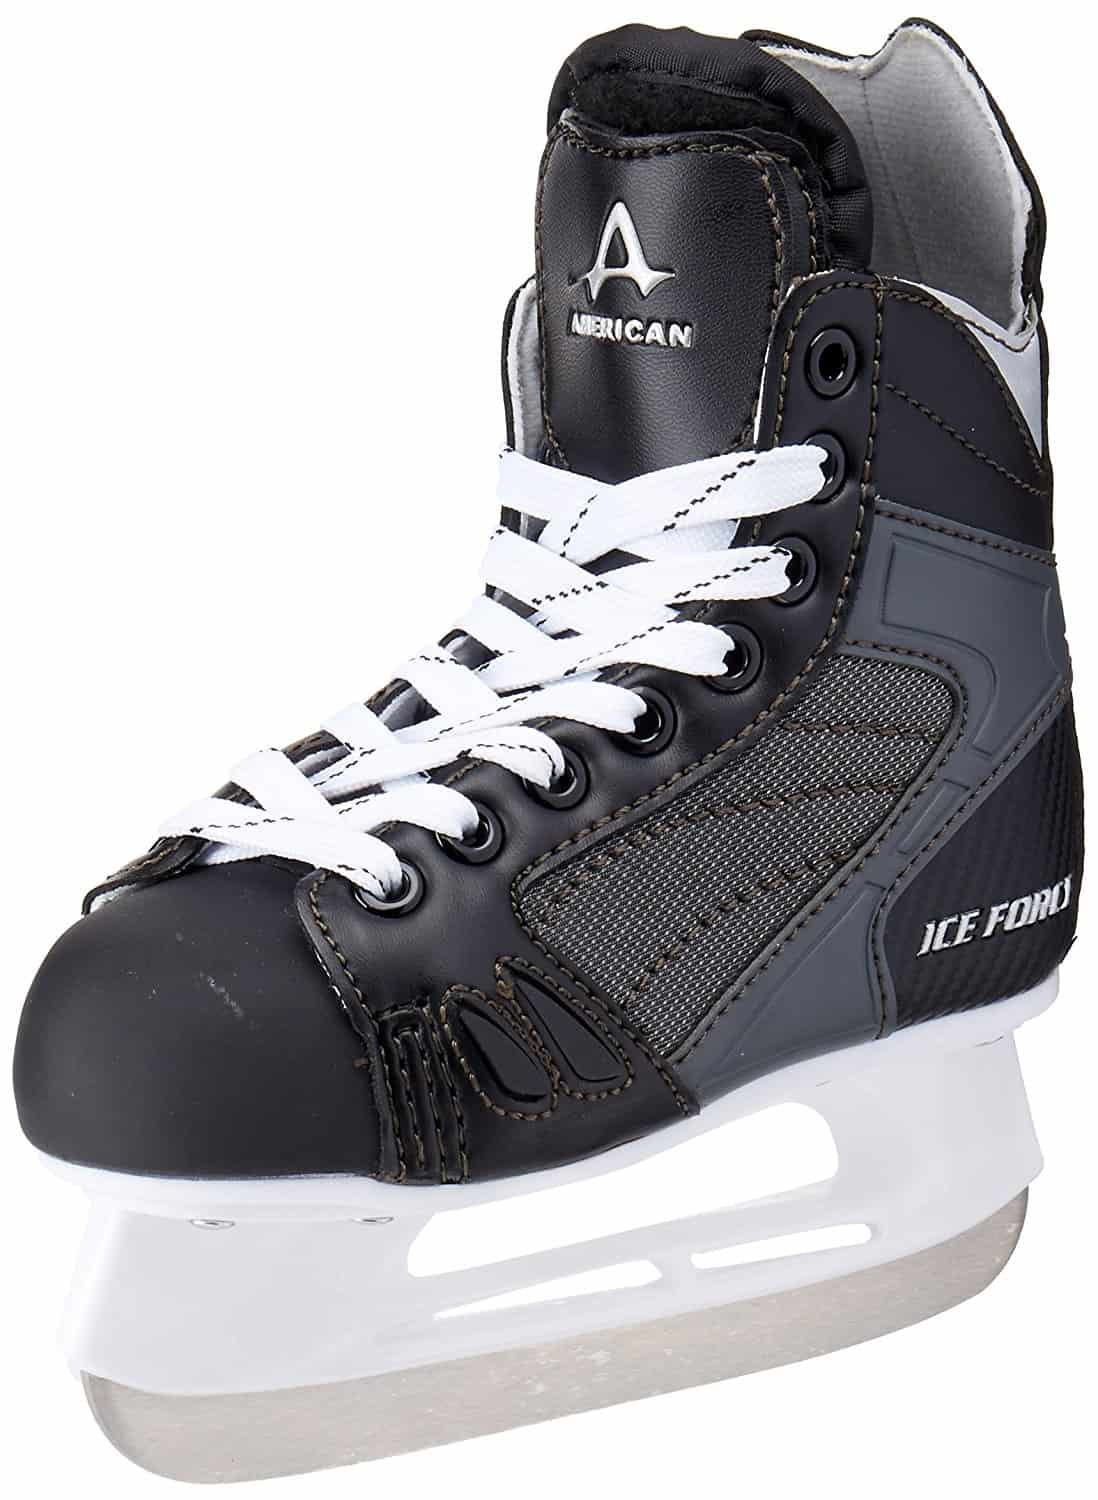 American Athletic Shoe Boy's Ice Force